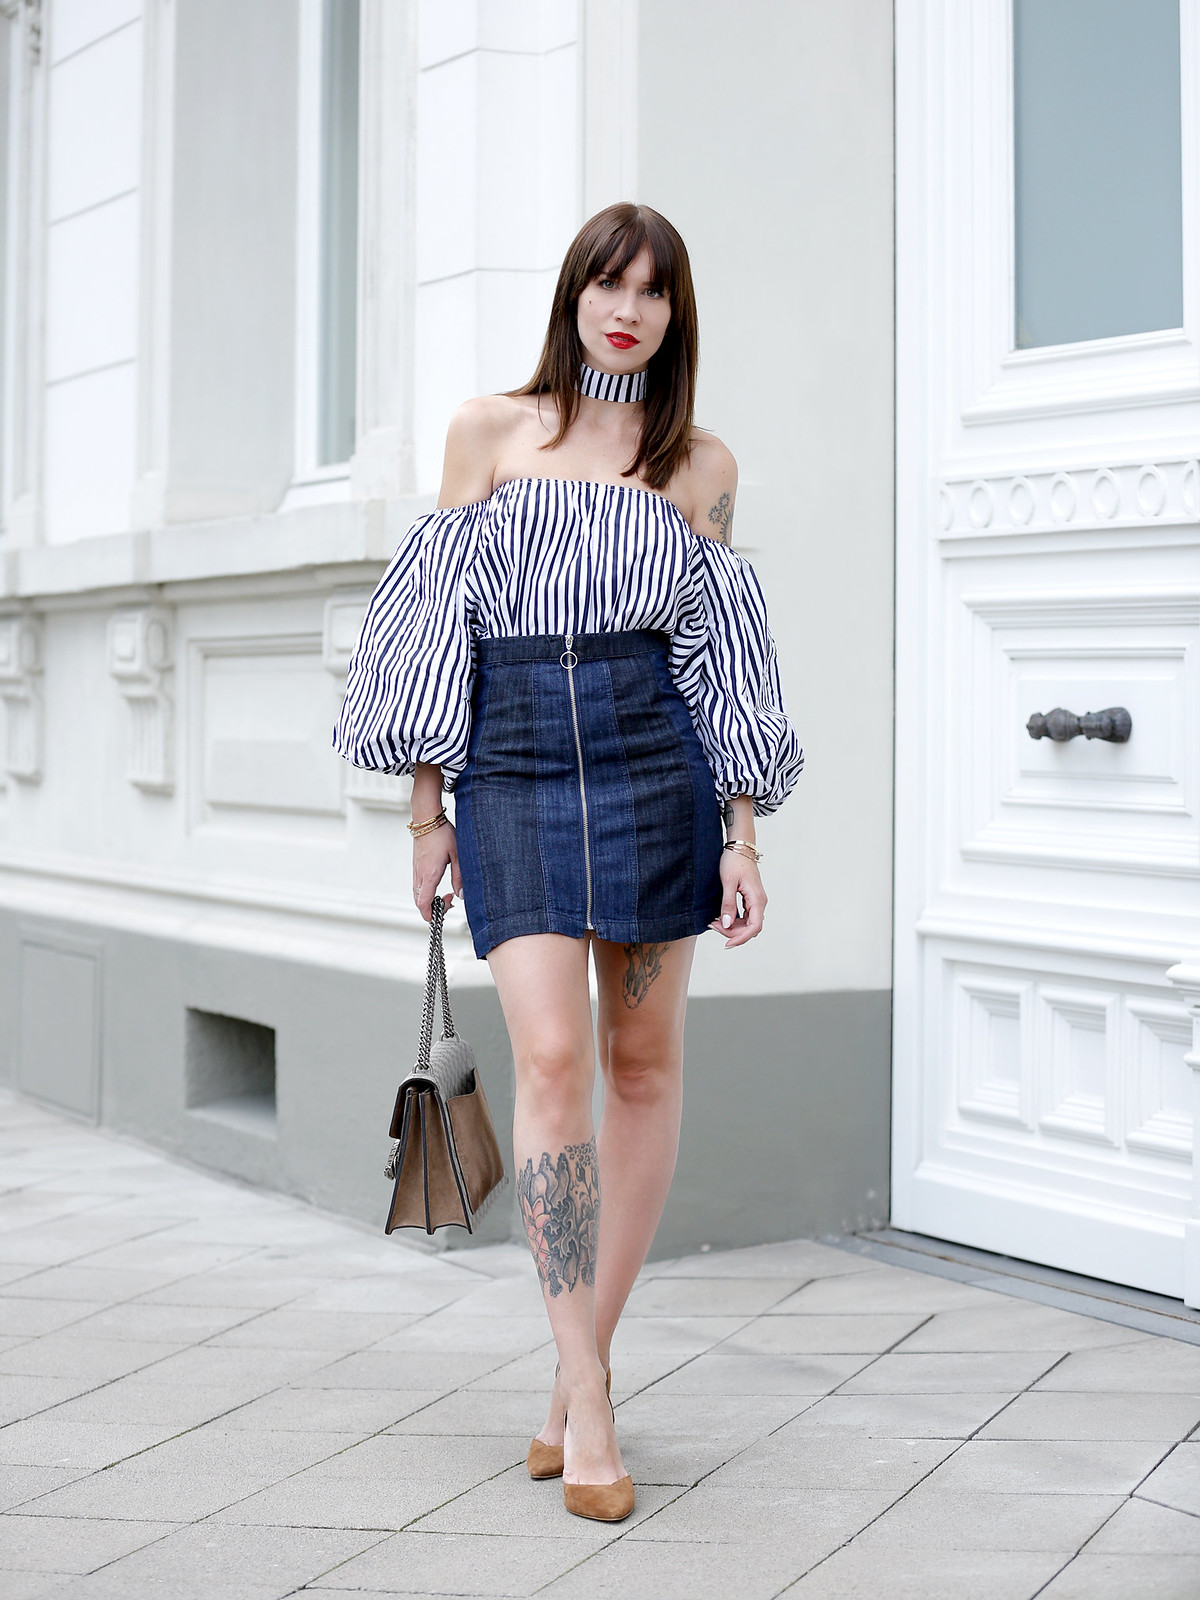 ootd outfit potd lookbook storets off shoulder stripe blouse chic mini denim skit seventies gucci dionysus bag luxury blogger fashionblog cats & dogs modeblogger berlin ricarda schernus dusseldorf fashionblog 6